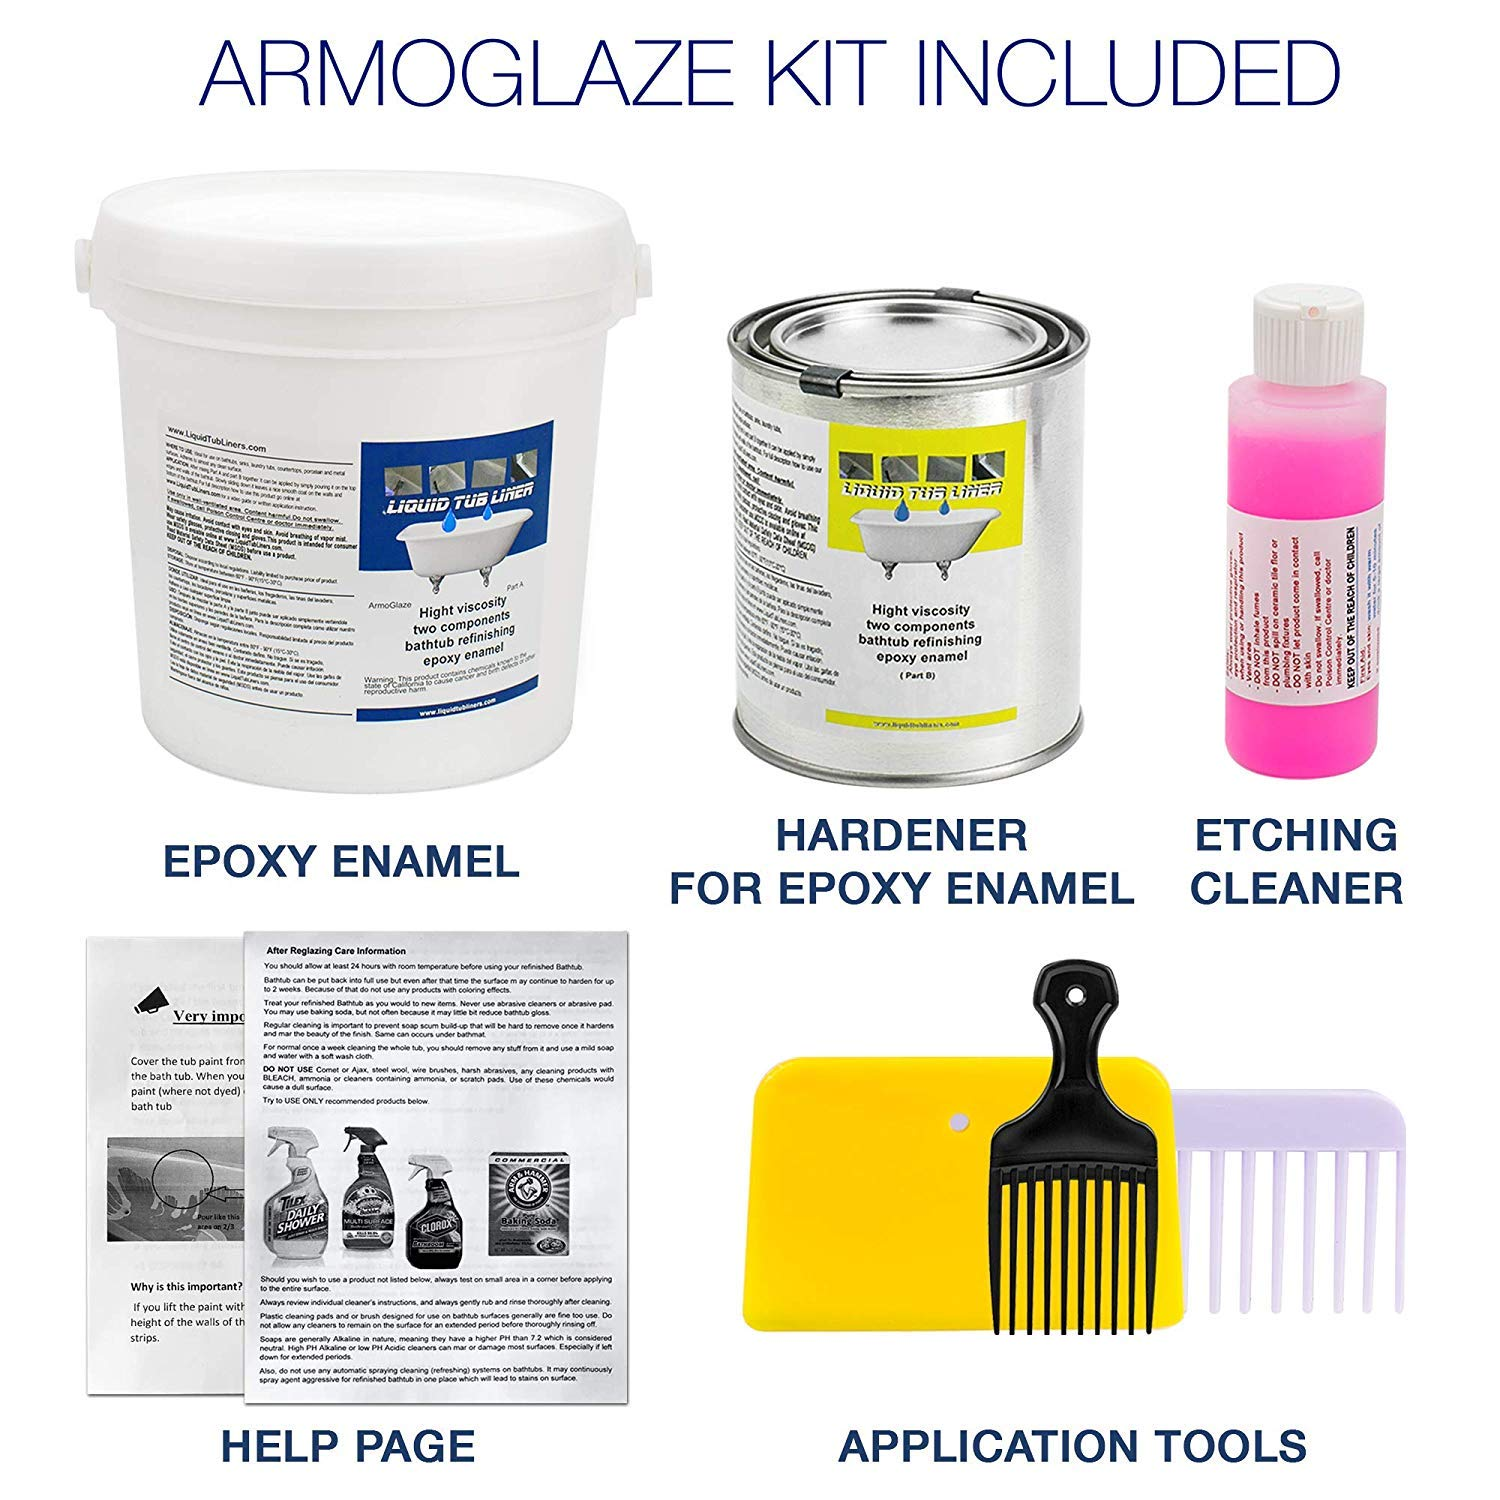 4. ArmoGlaze Bathtub Refinishing Kit